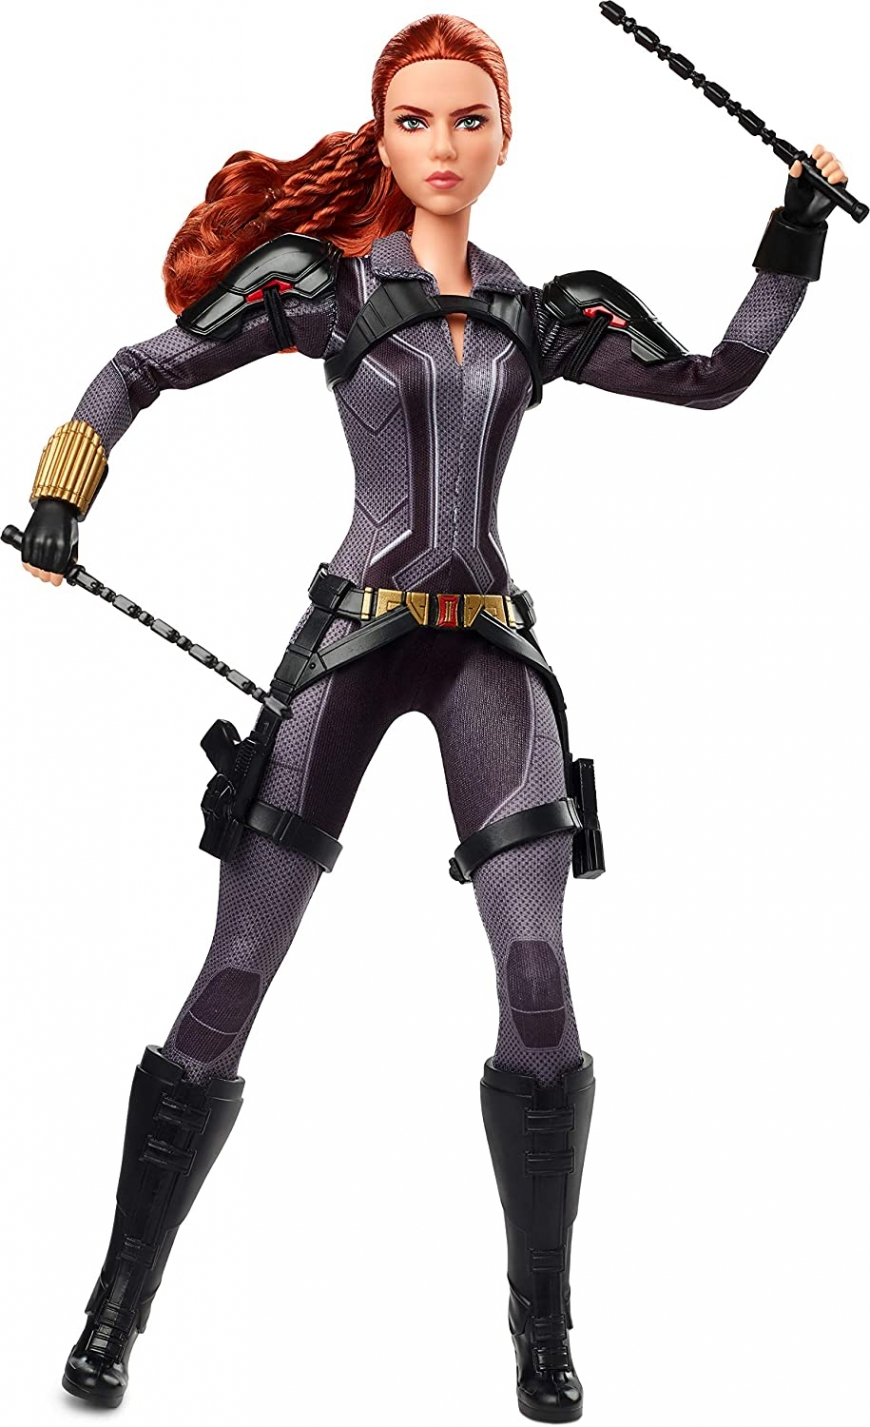 Collector Barbie Black Widow Doll 2020 in black suit